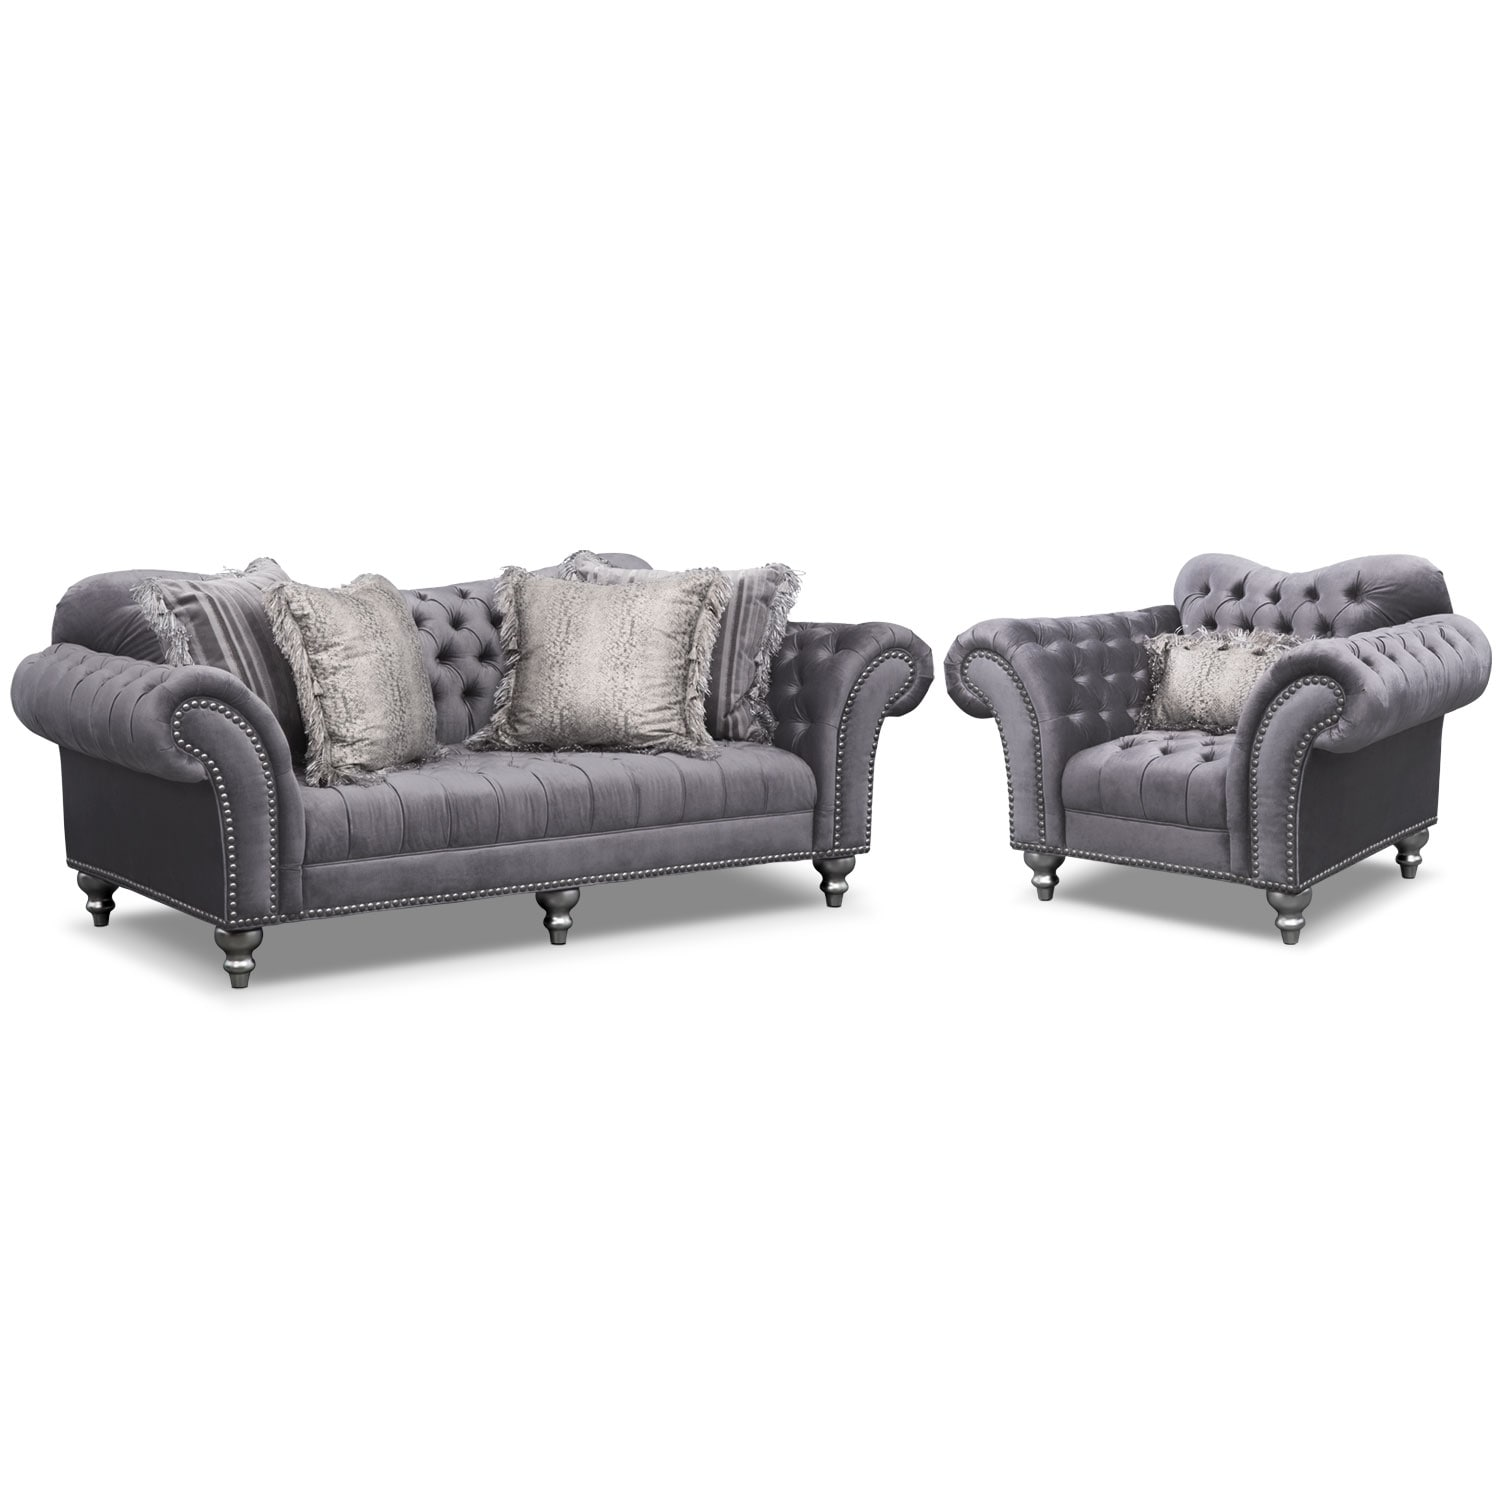 Living Room Furniture - Brittney Sofa and Chair Set- Gray